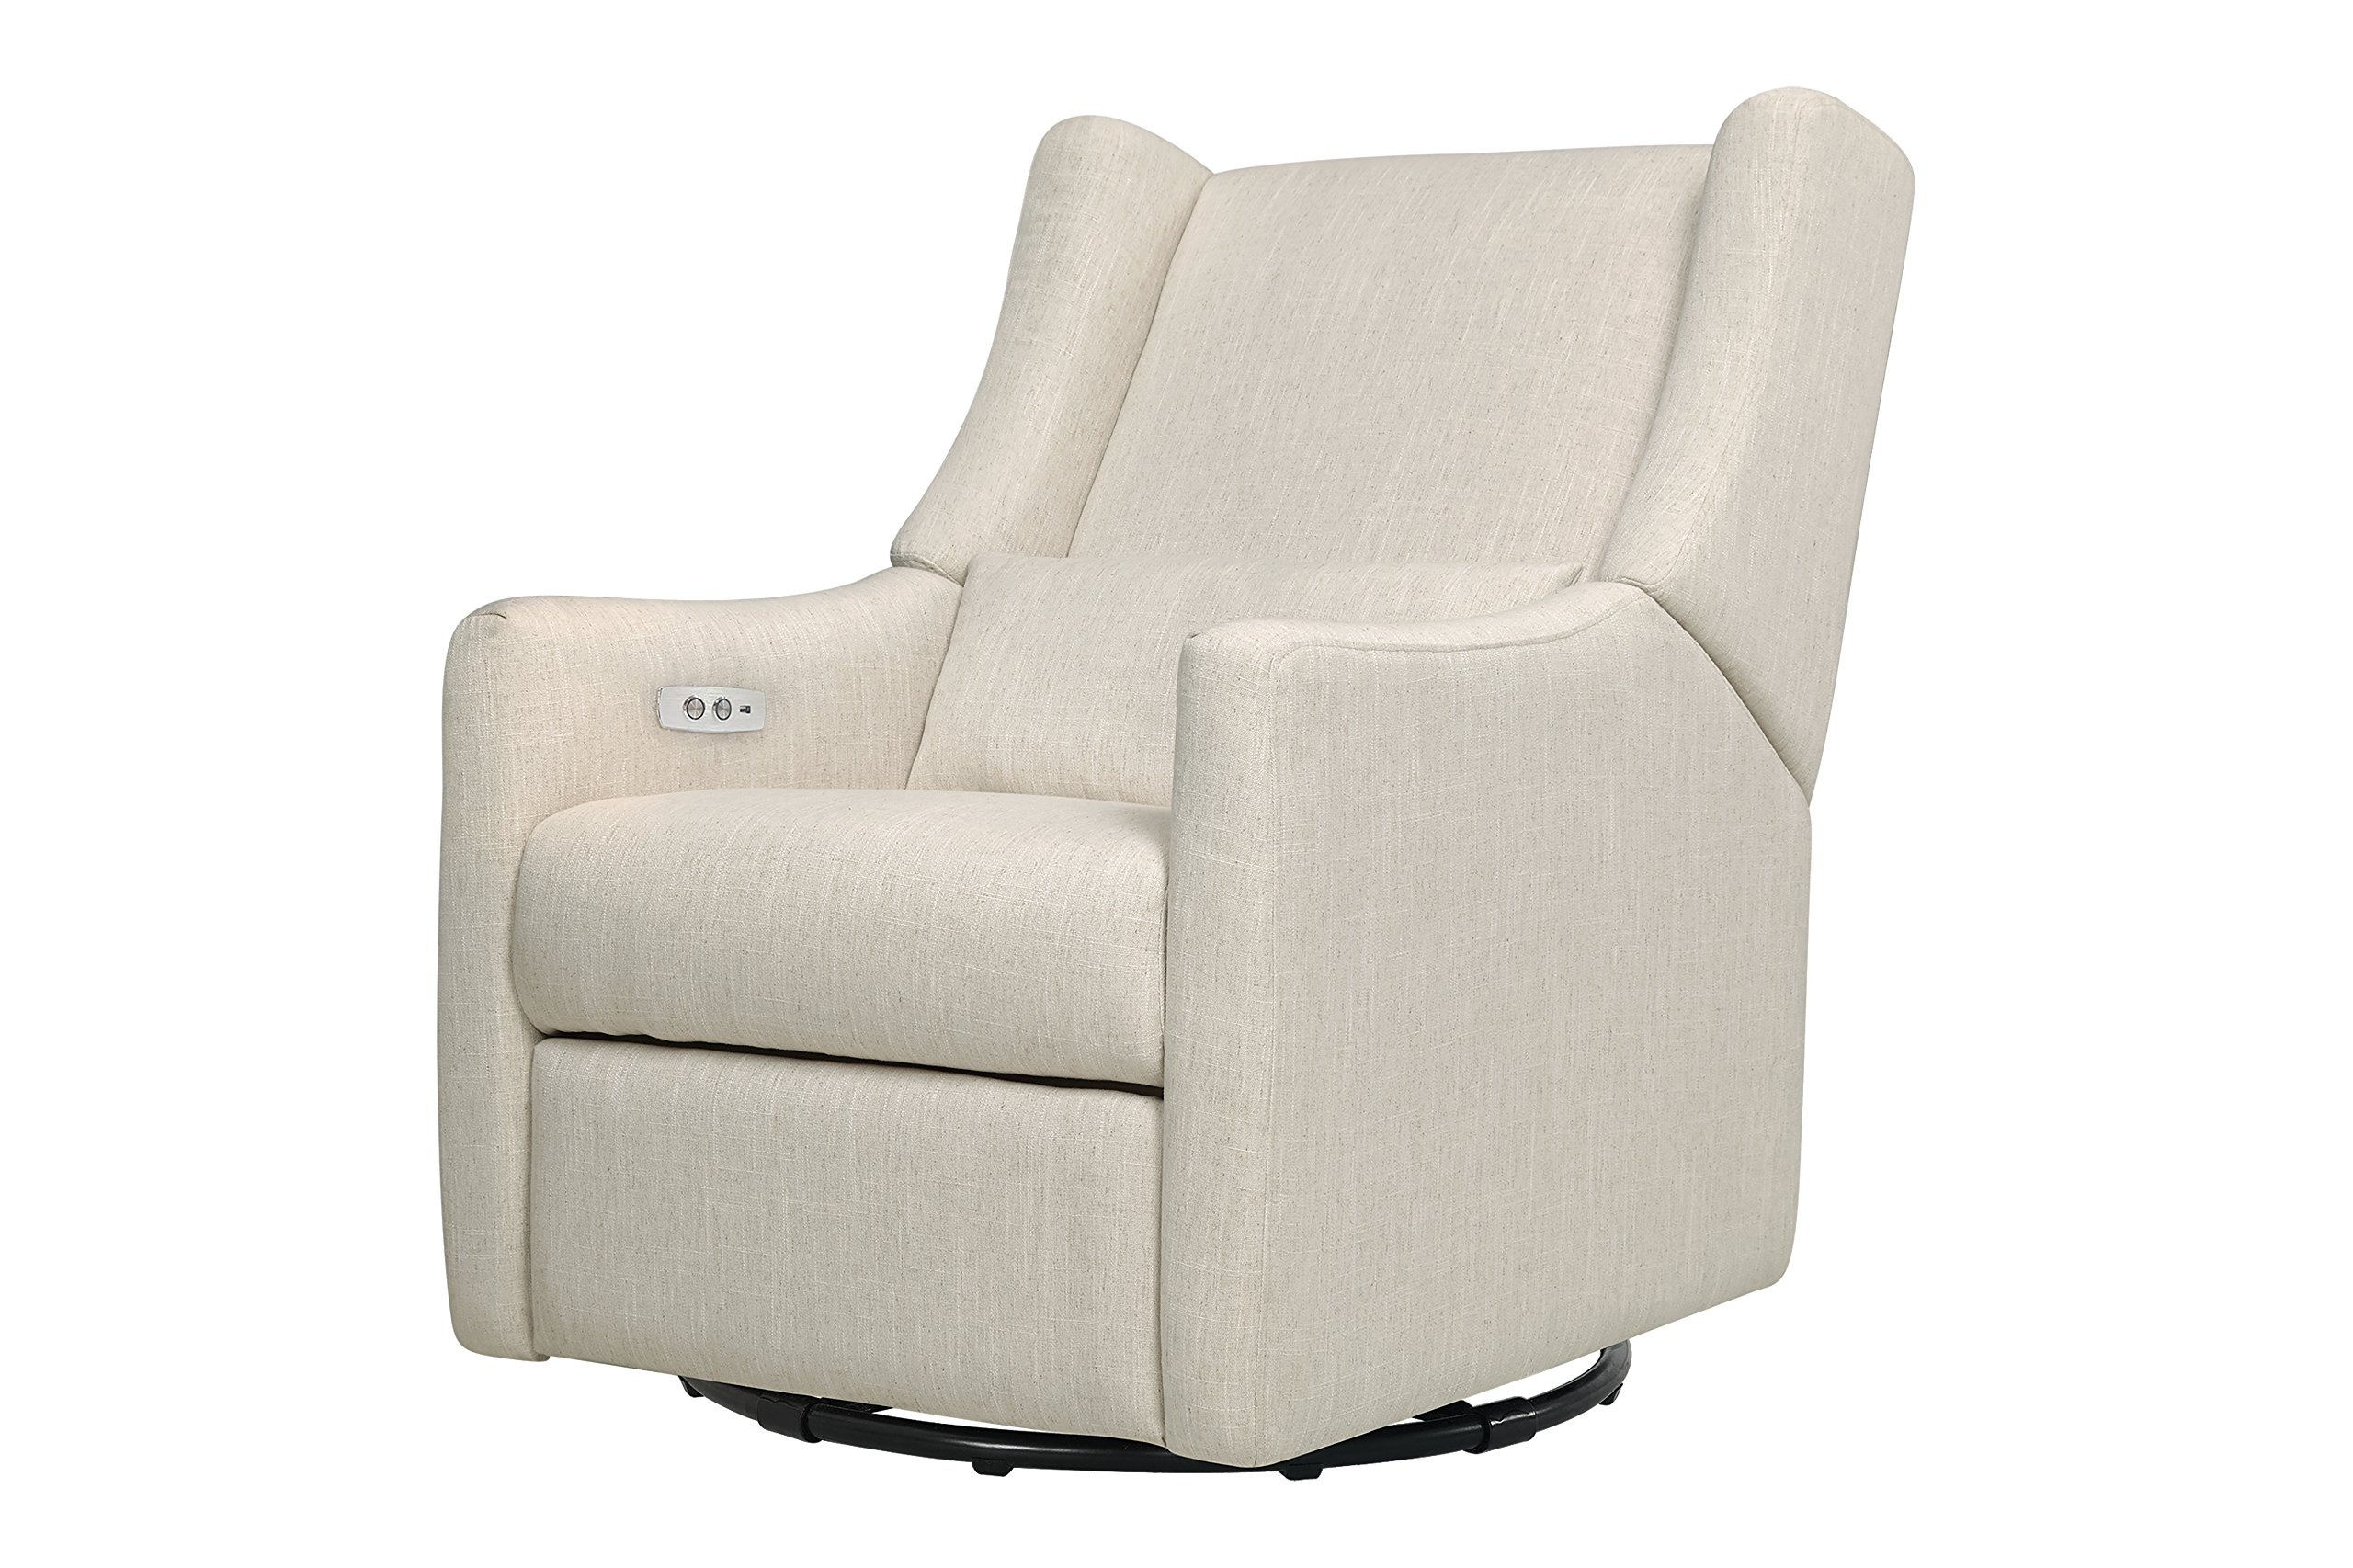 Babyletto Kiwi Electronic Recliner and Swivel Glider with USB Port, White Linen by babyletto